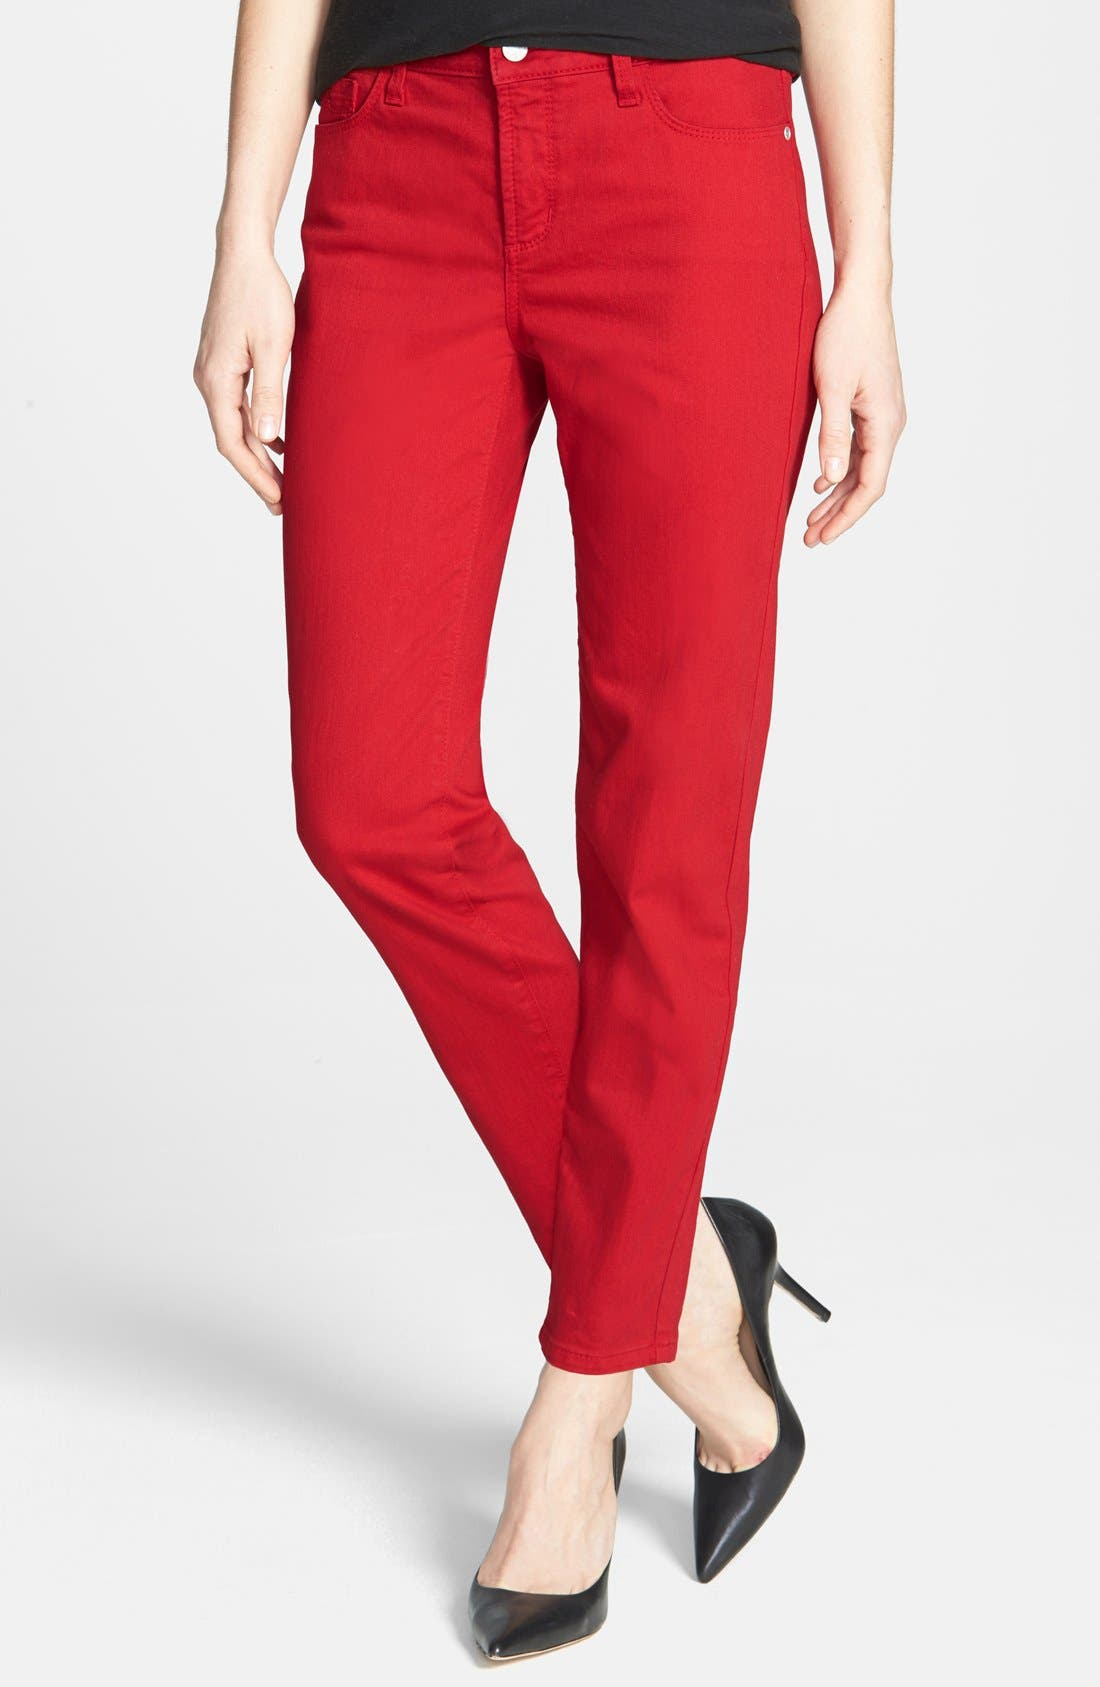 Alternate Image 1 Selected - NYDJ 'Clarissa' Fitted Stretch Ankle Skinny Jeans (Regular & Petite)